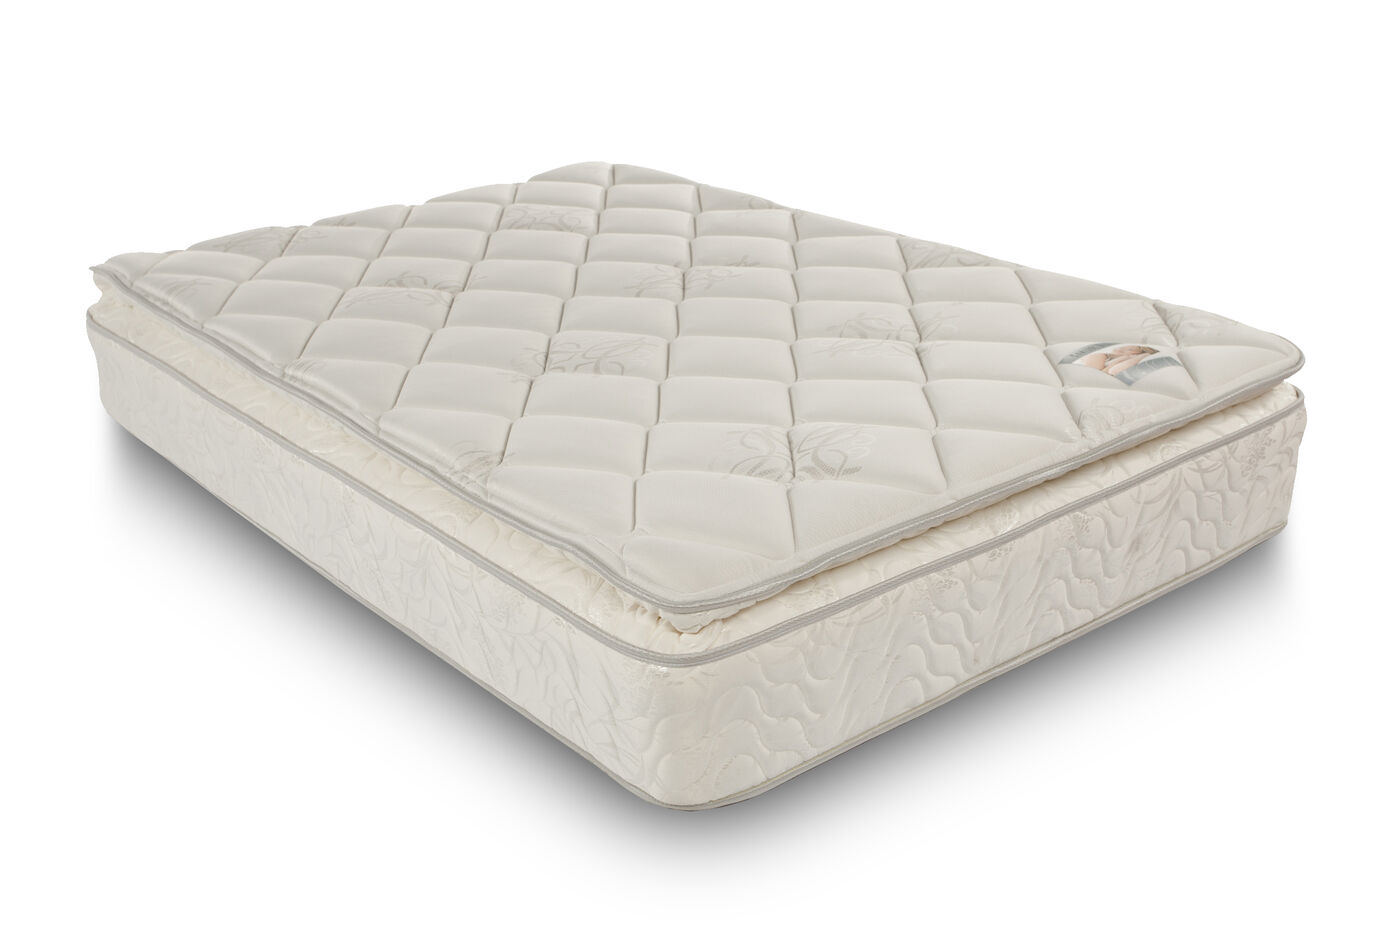 Lady americana comfort rest hotel mattress mathis for Comfort inn mattress brand